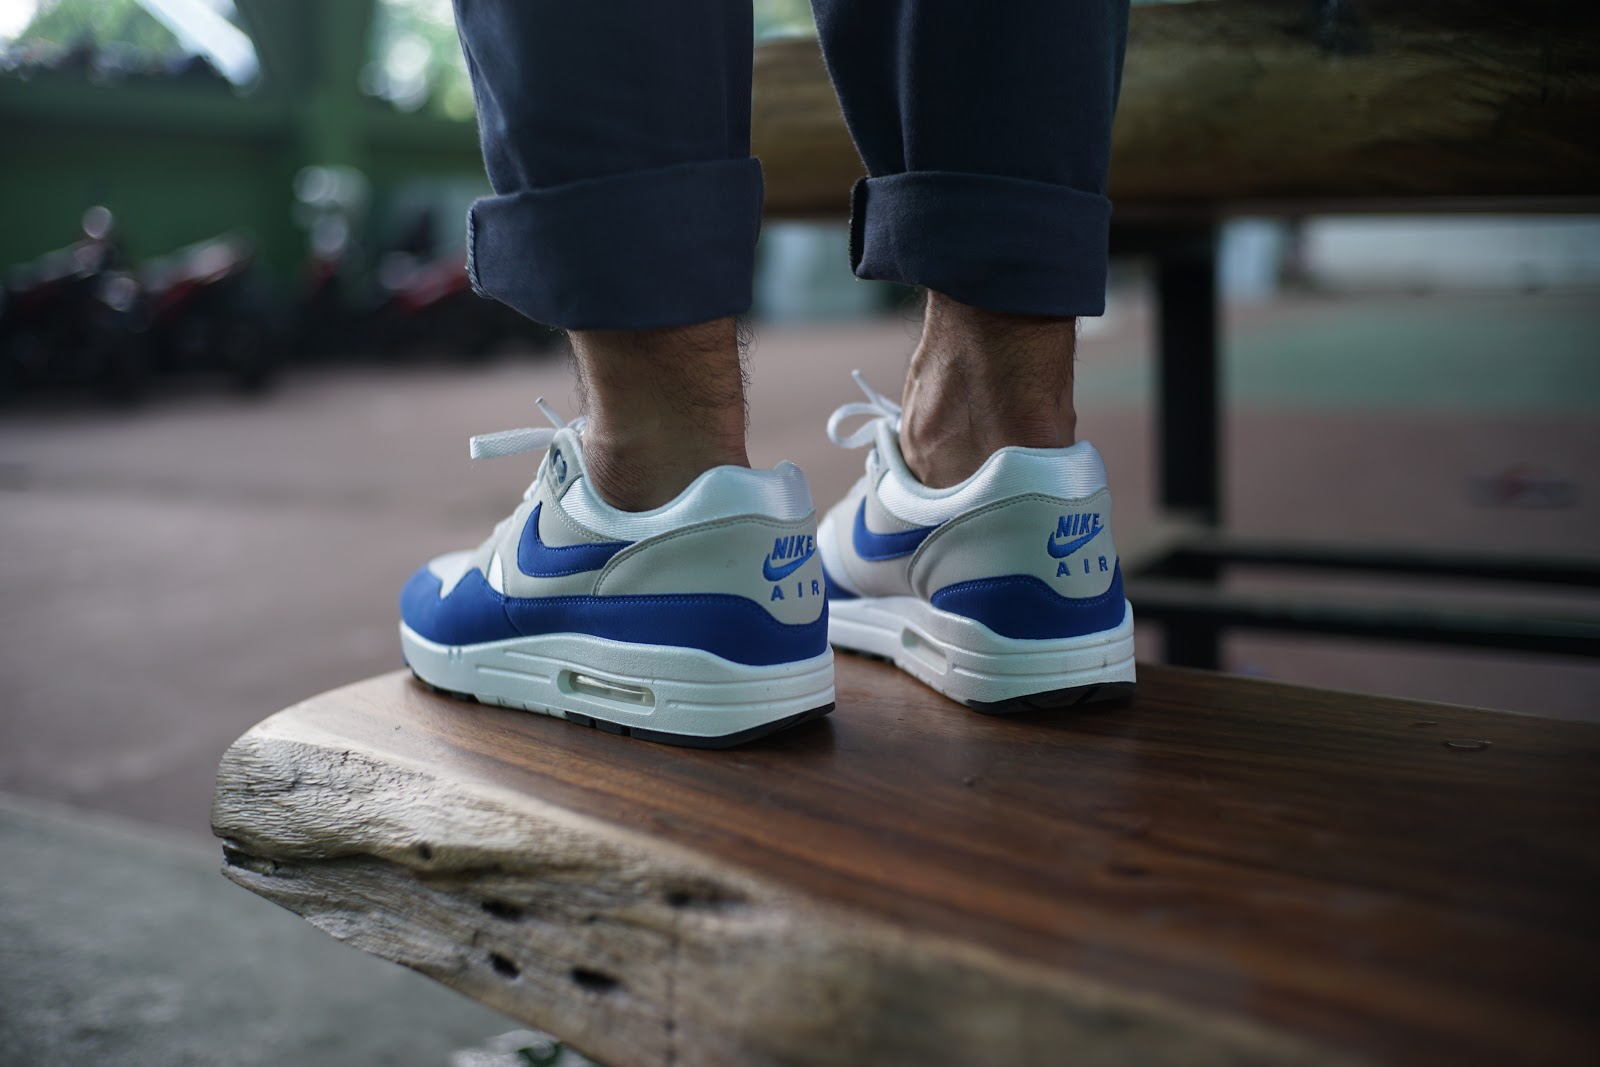 fb19bb3c59 ON FEET : Iam.ran06 - Nike Air Max 1 - Anniversary